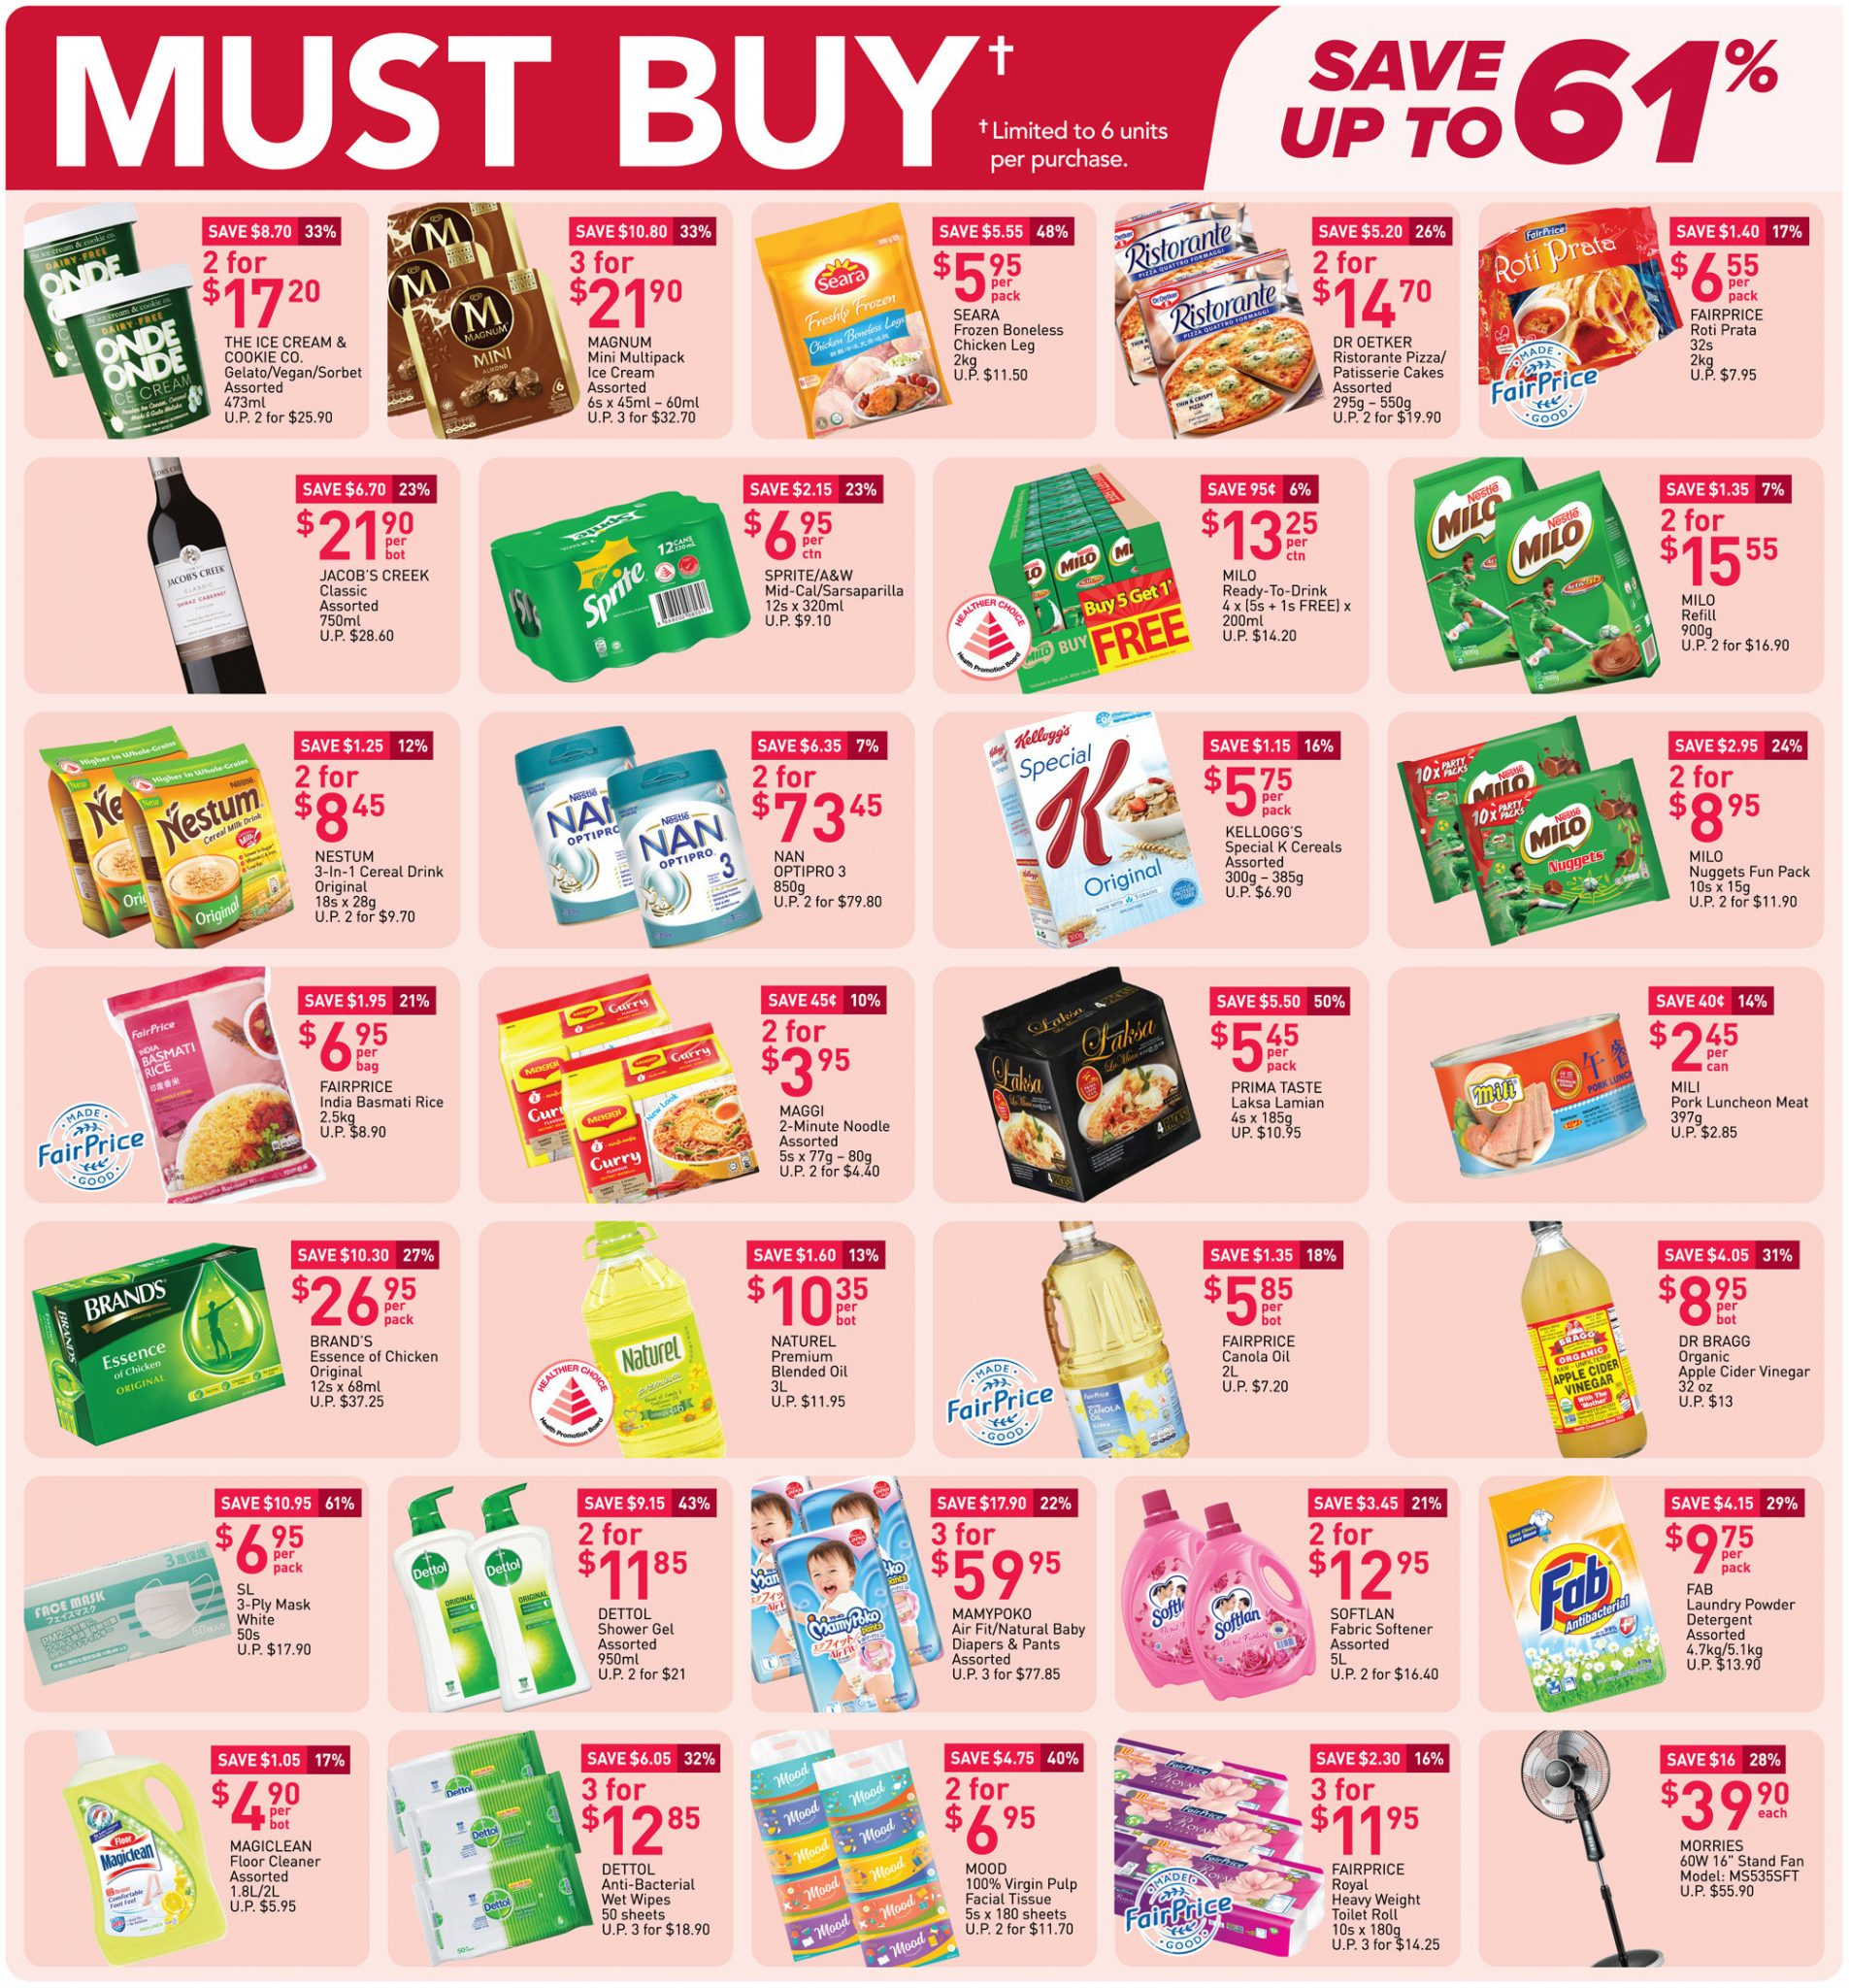 Must-buy items from now till 7 April 2021